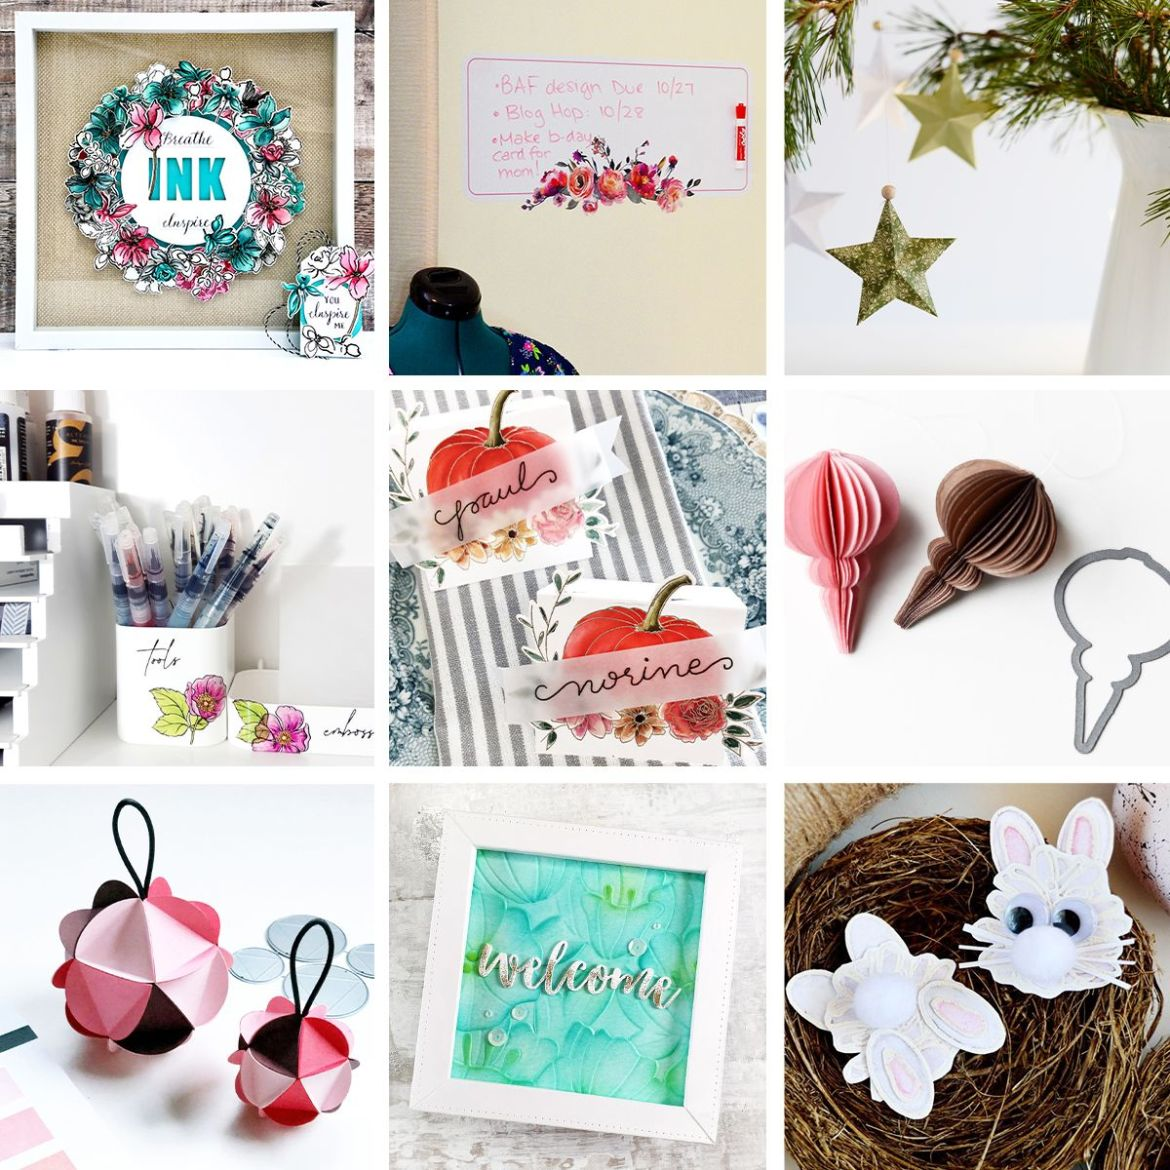 DIY Home Decor and Holiday Decoration Projects